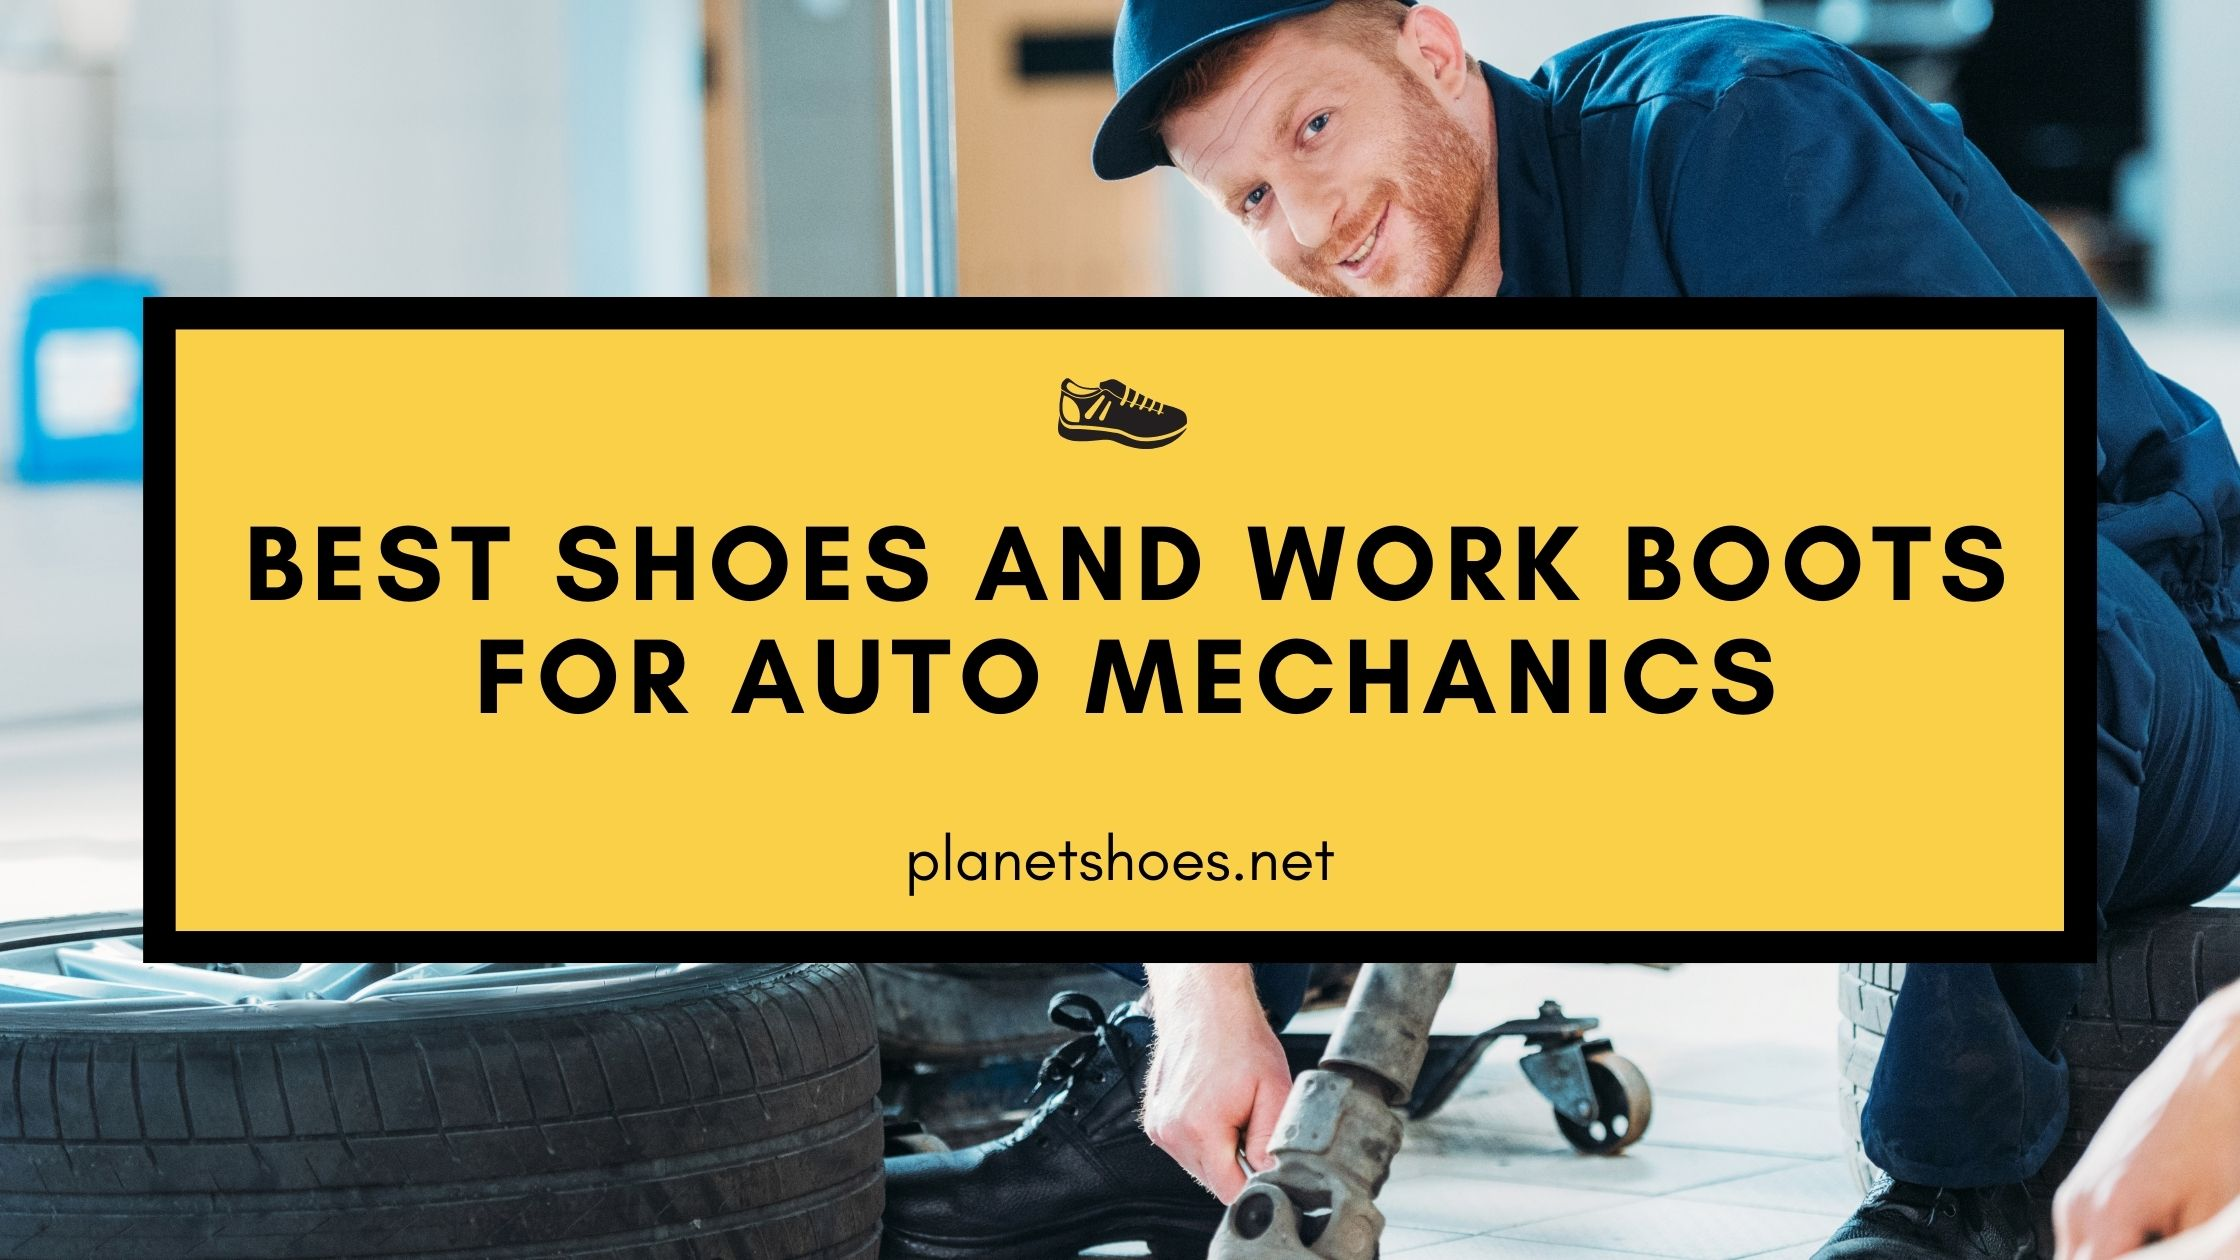 PS-Best-shoes-and-work-boots-for-auto-mechanics